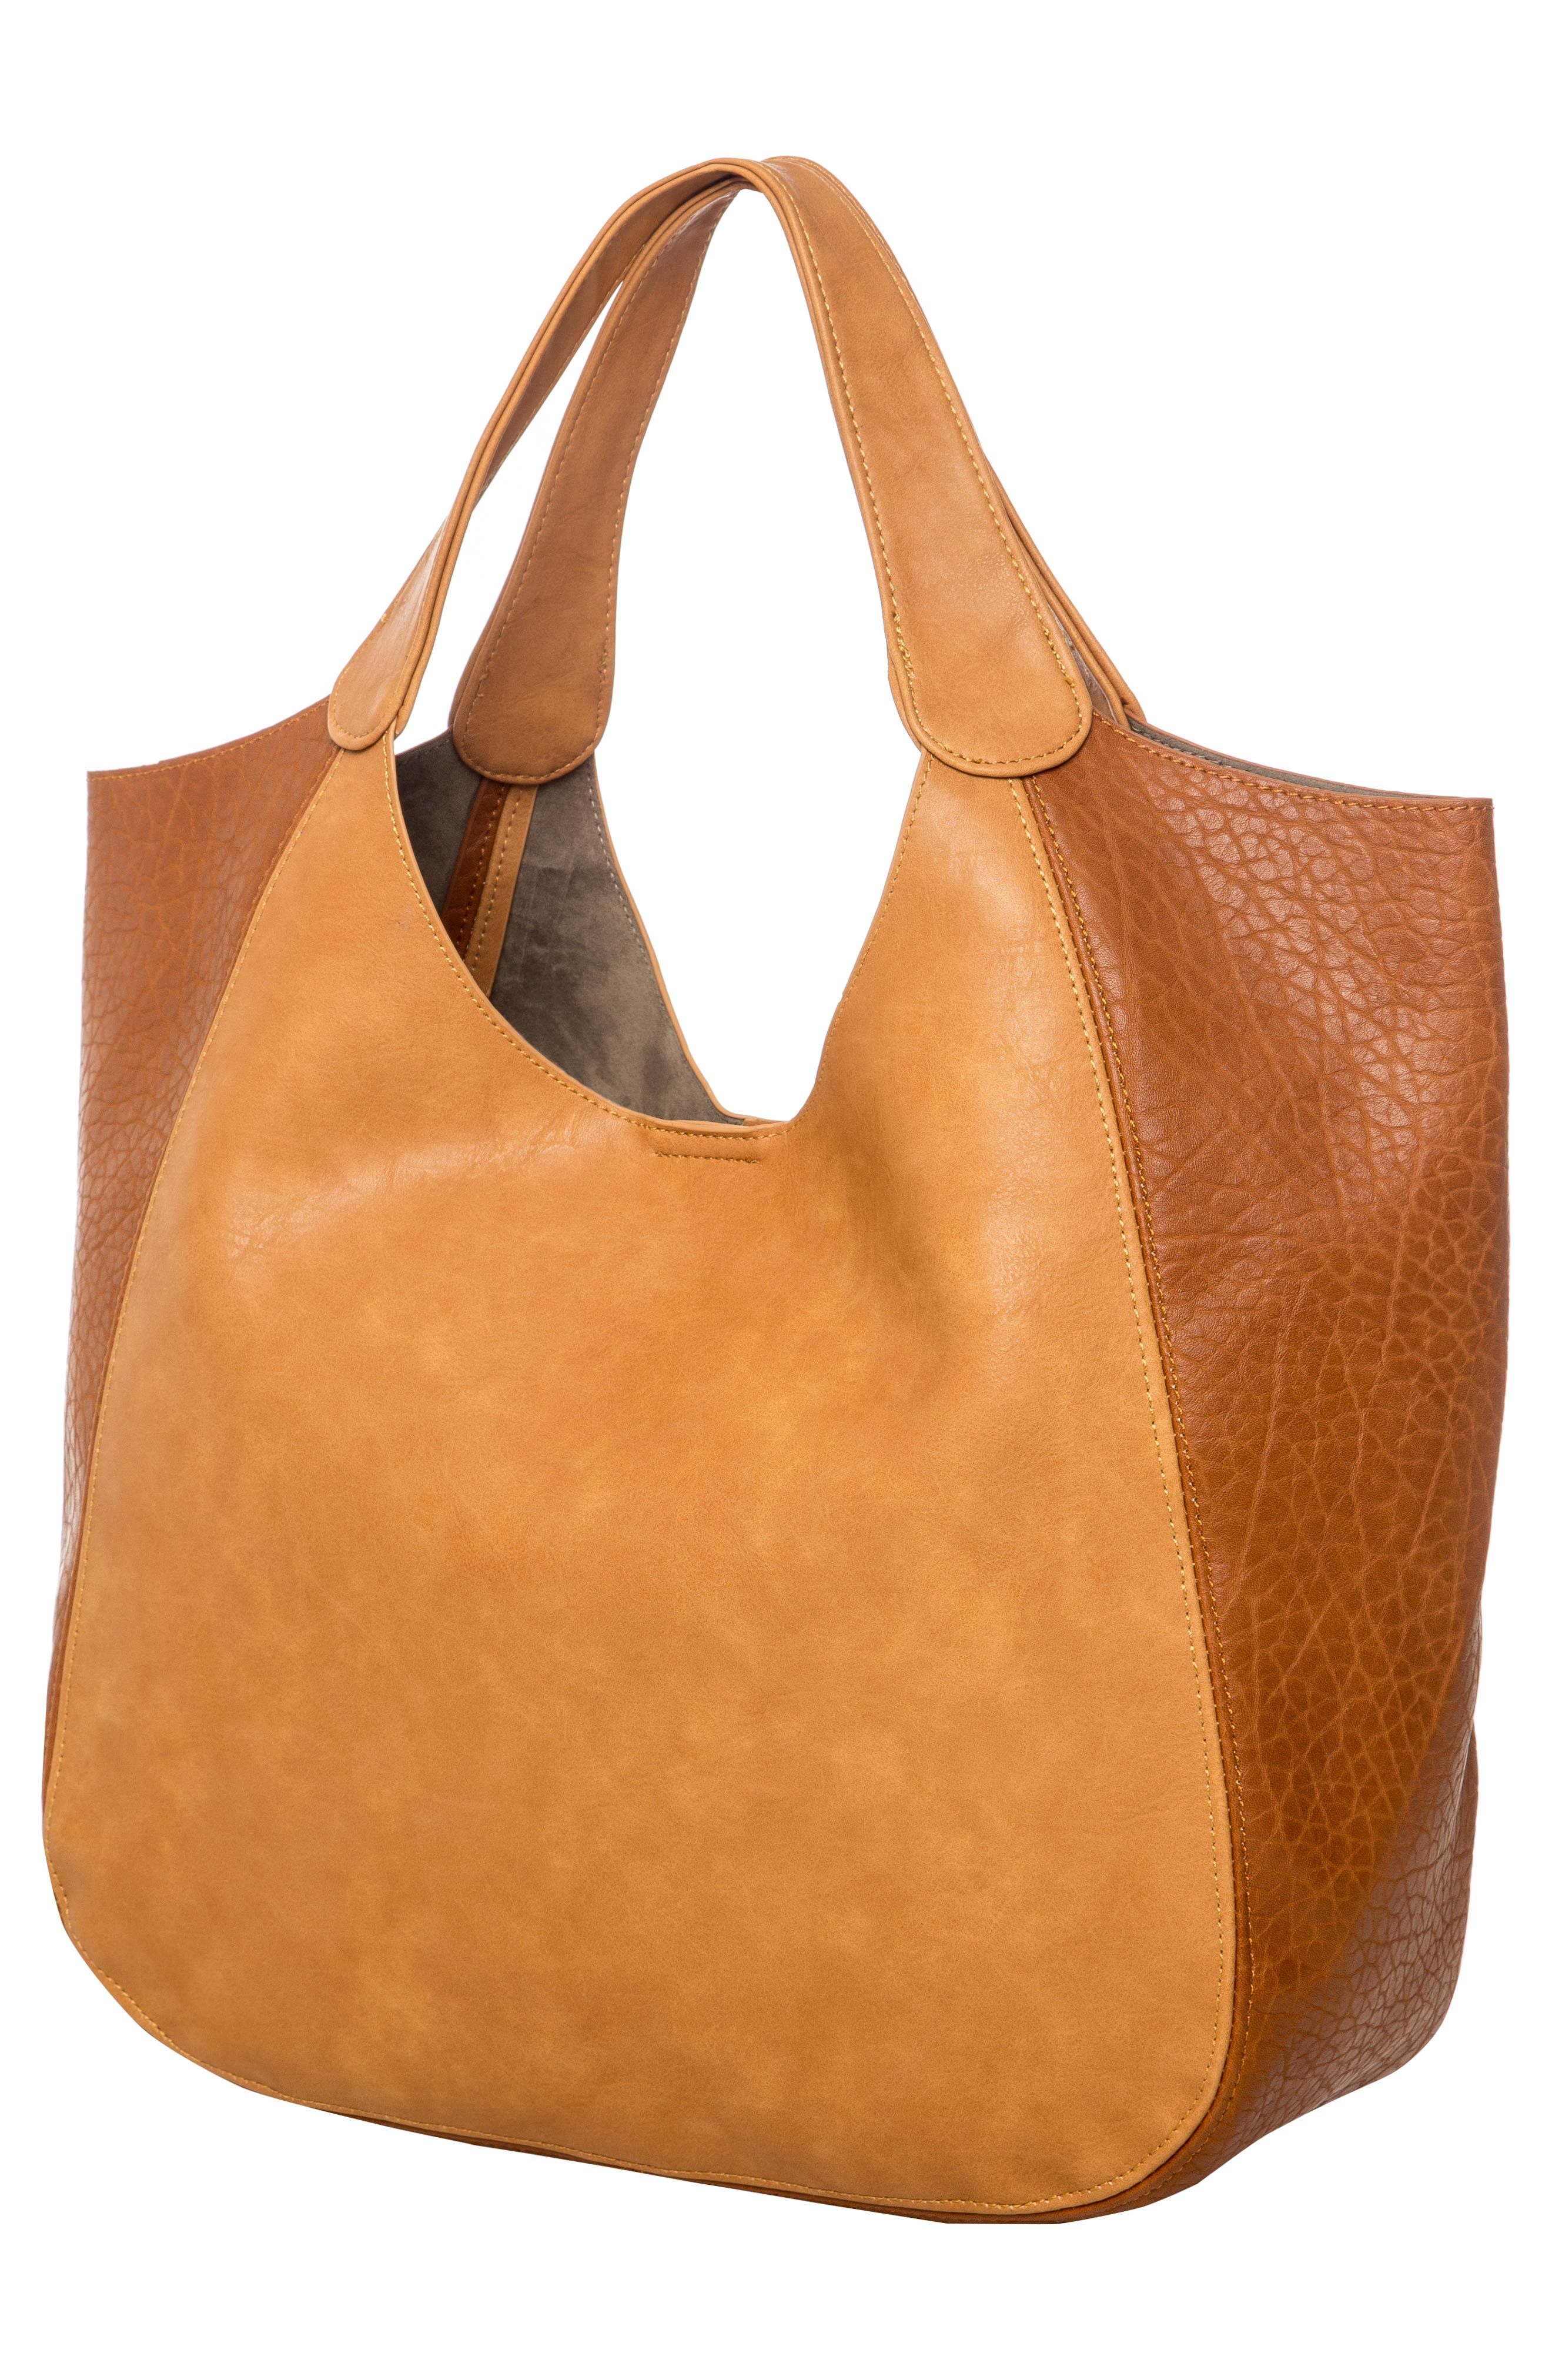 Masterpiece Vegan Leather Tote,                             Alternate thumbnail 4, color,                             200